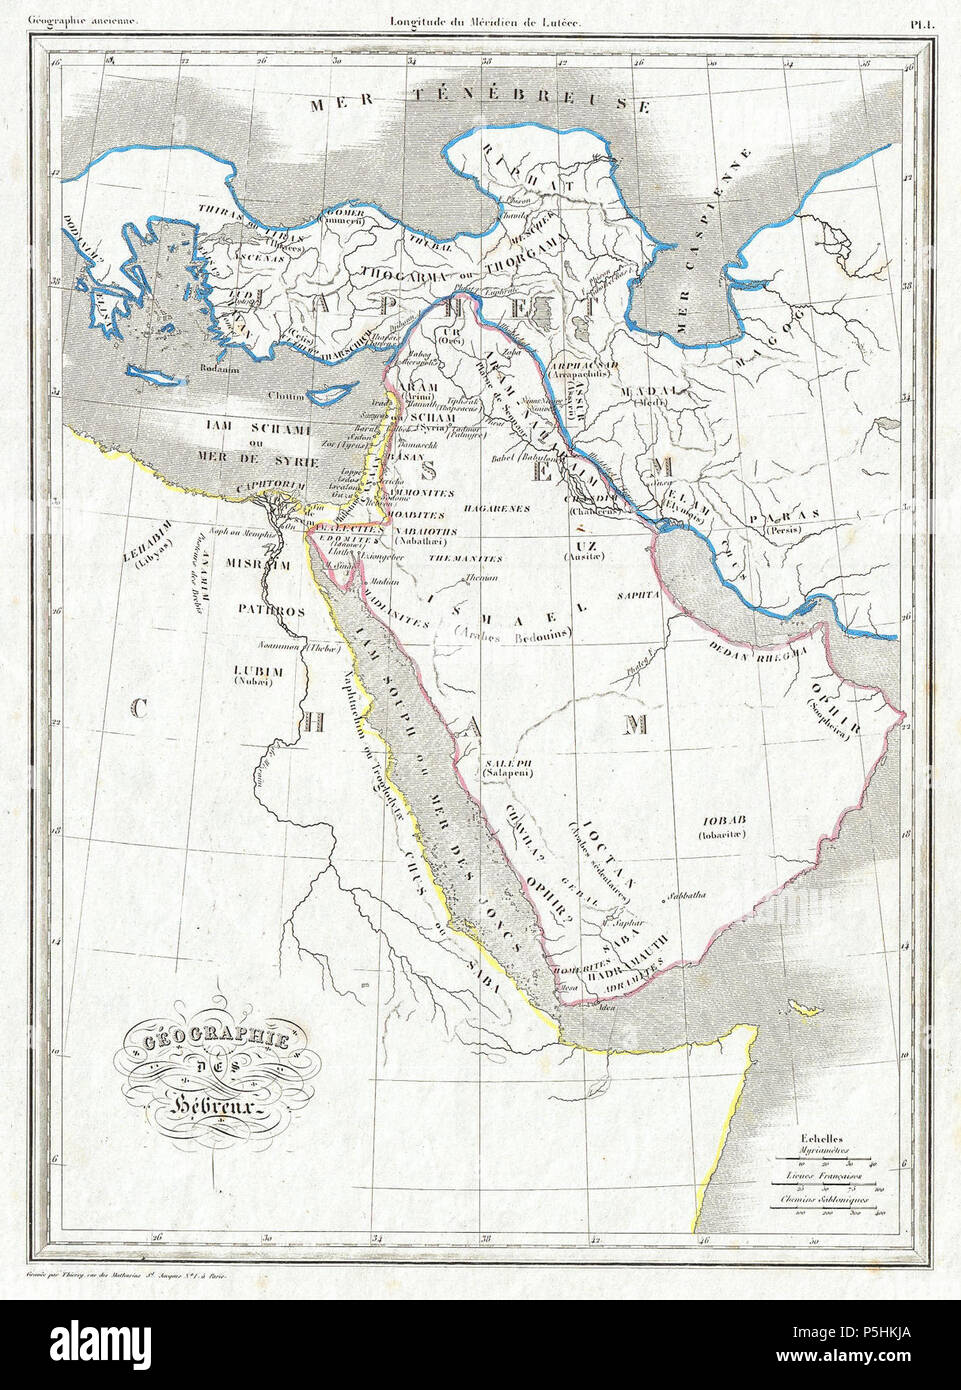 1843 Malte Brun Map of the Biblical Lands of the Hebrews (Egypt, Arabia, Israel, Turkey) - Geographicus - Hebreux-maltebrun-1837. Stock Photo